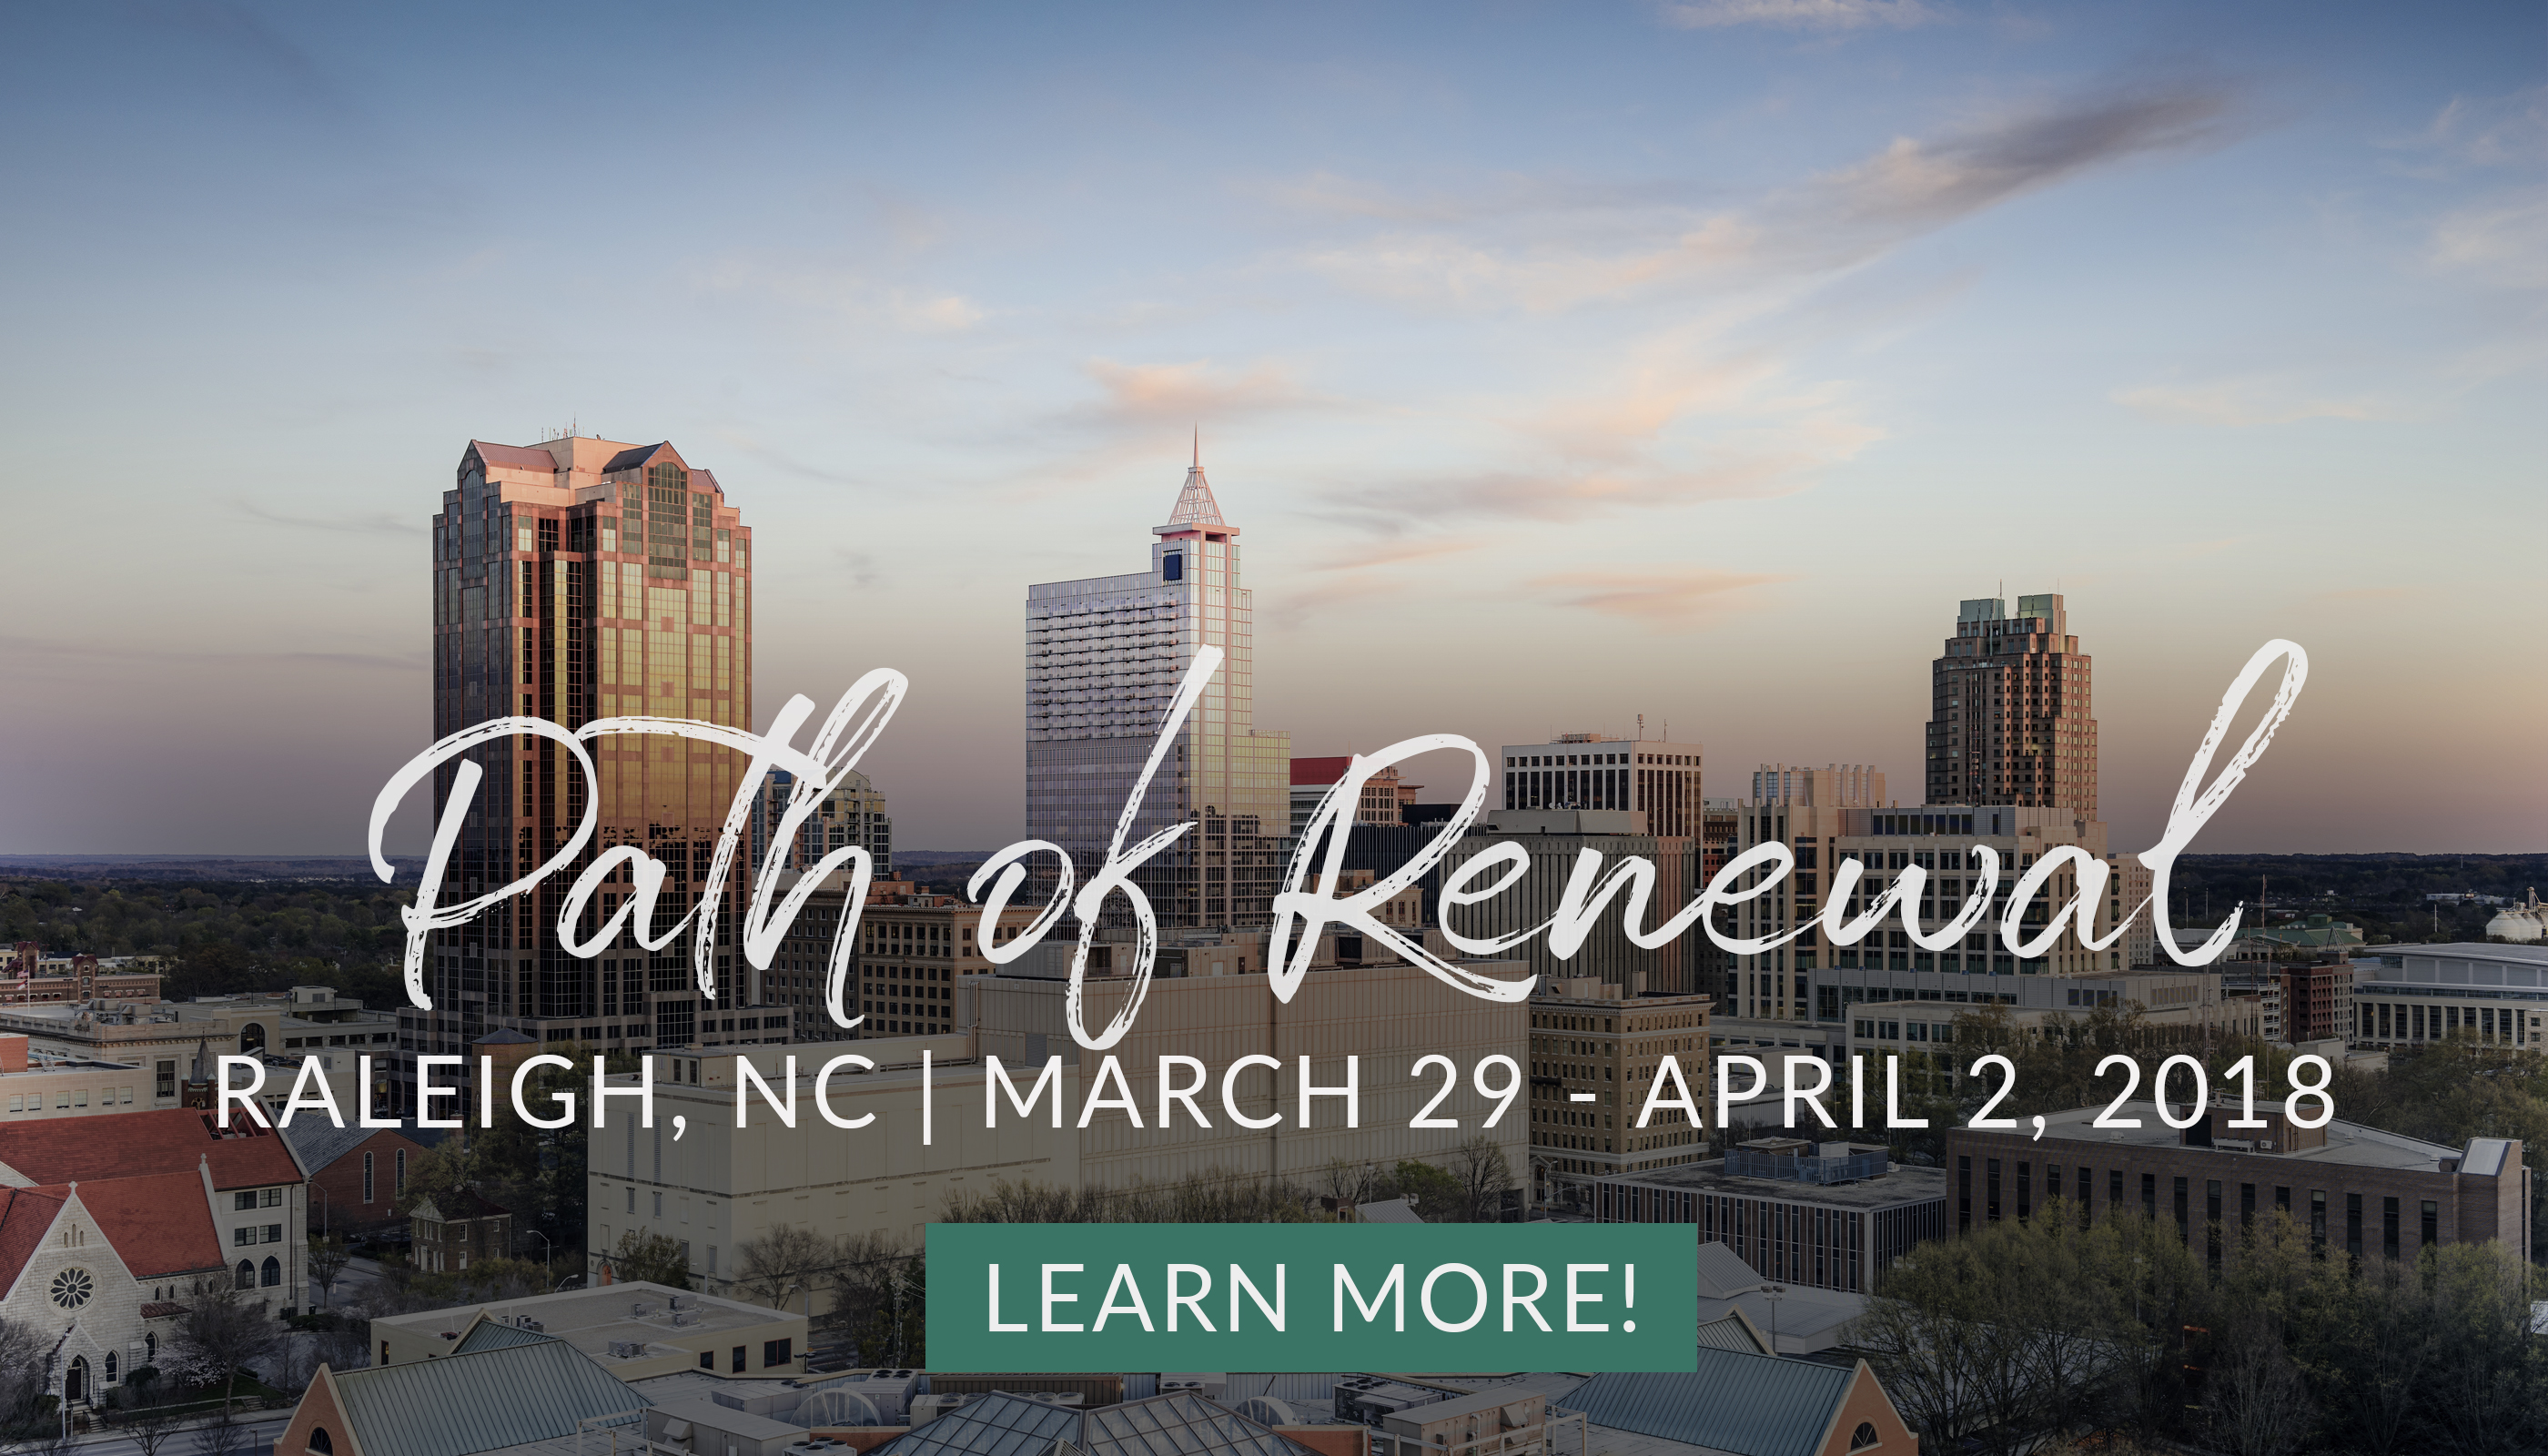 https://marriagerecoverycenter.com/wp-content/uploads/2019/01/website-side-bar-graphic-P-of-R-Raleigh-Mar-2019.jpg